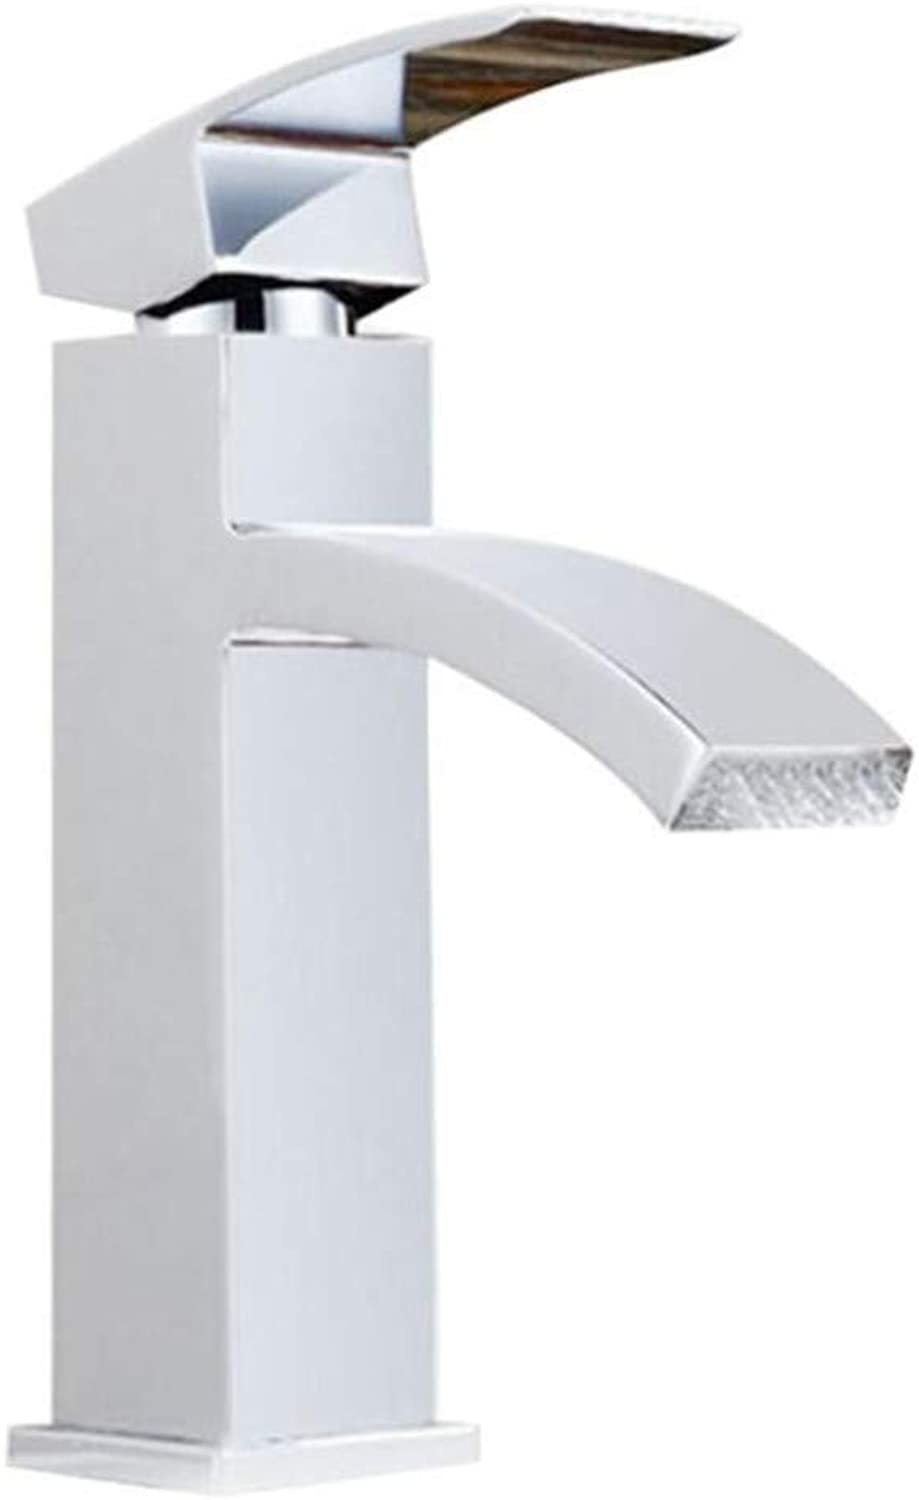 Bathroom Sink Basin Lever Mixer Tap Mixing Water Tap Waterfall Flat Mouth Faucet Above Counter Basin Basin Hot and Cold Wide Mouth Faucet